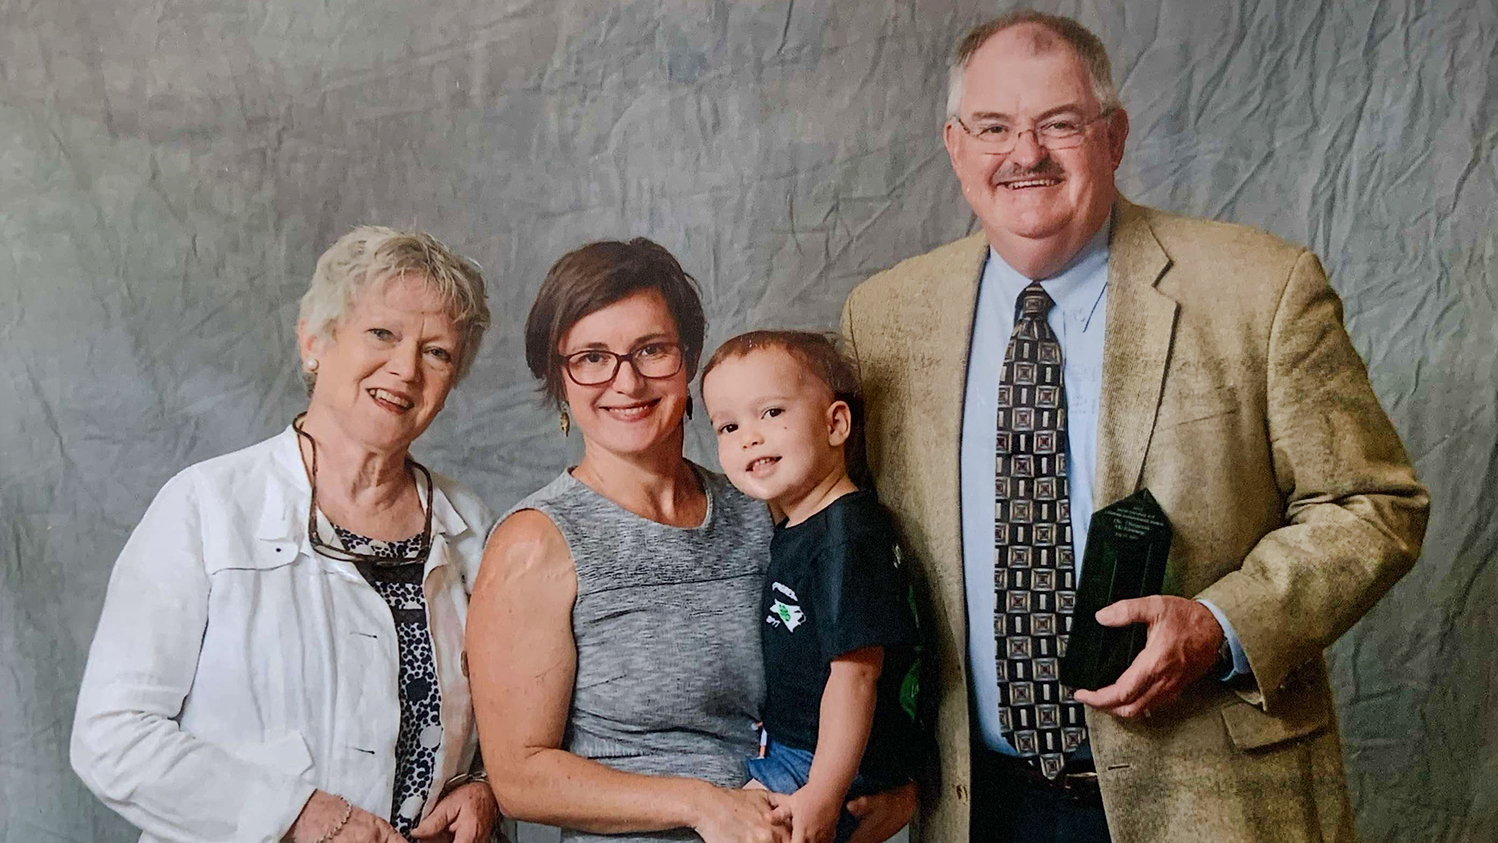 Thearon McKinney pictured with his family